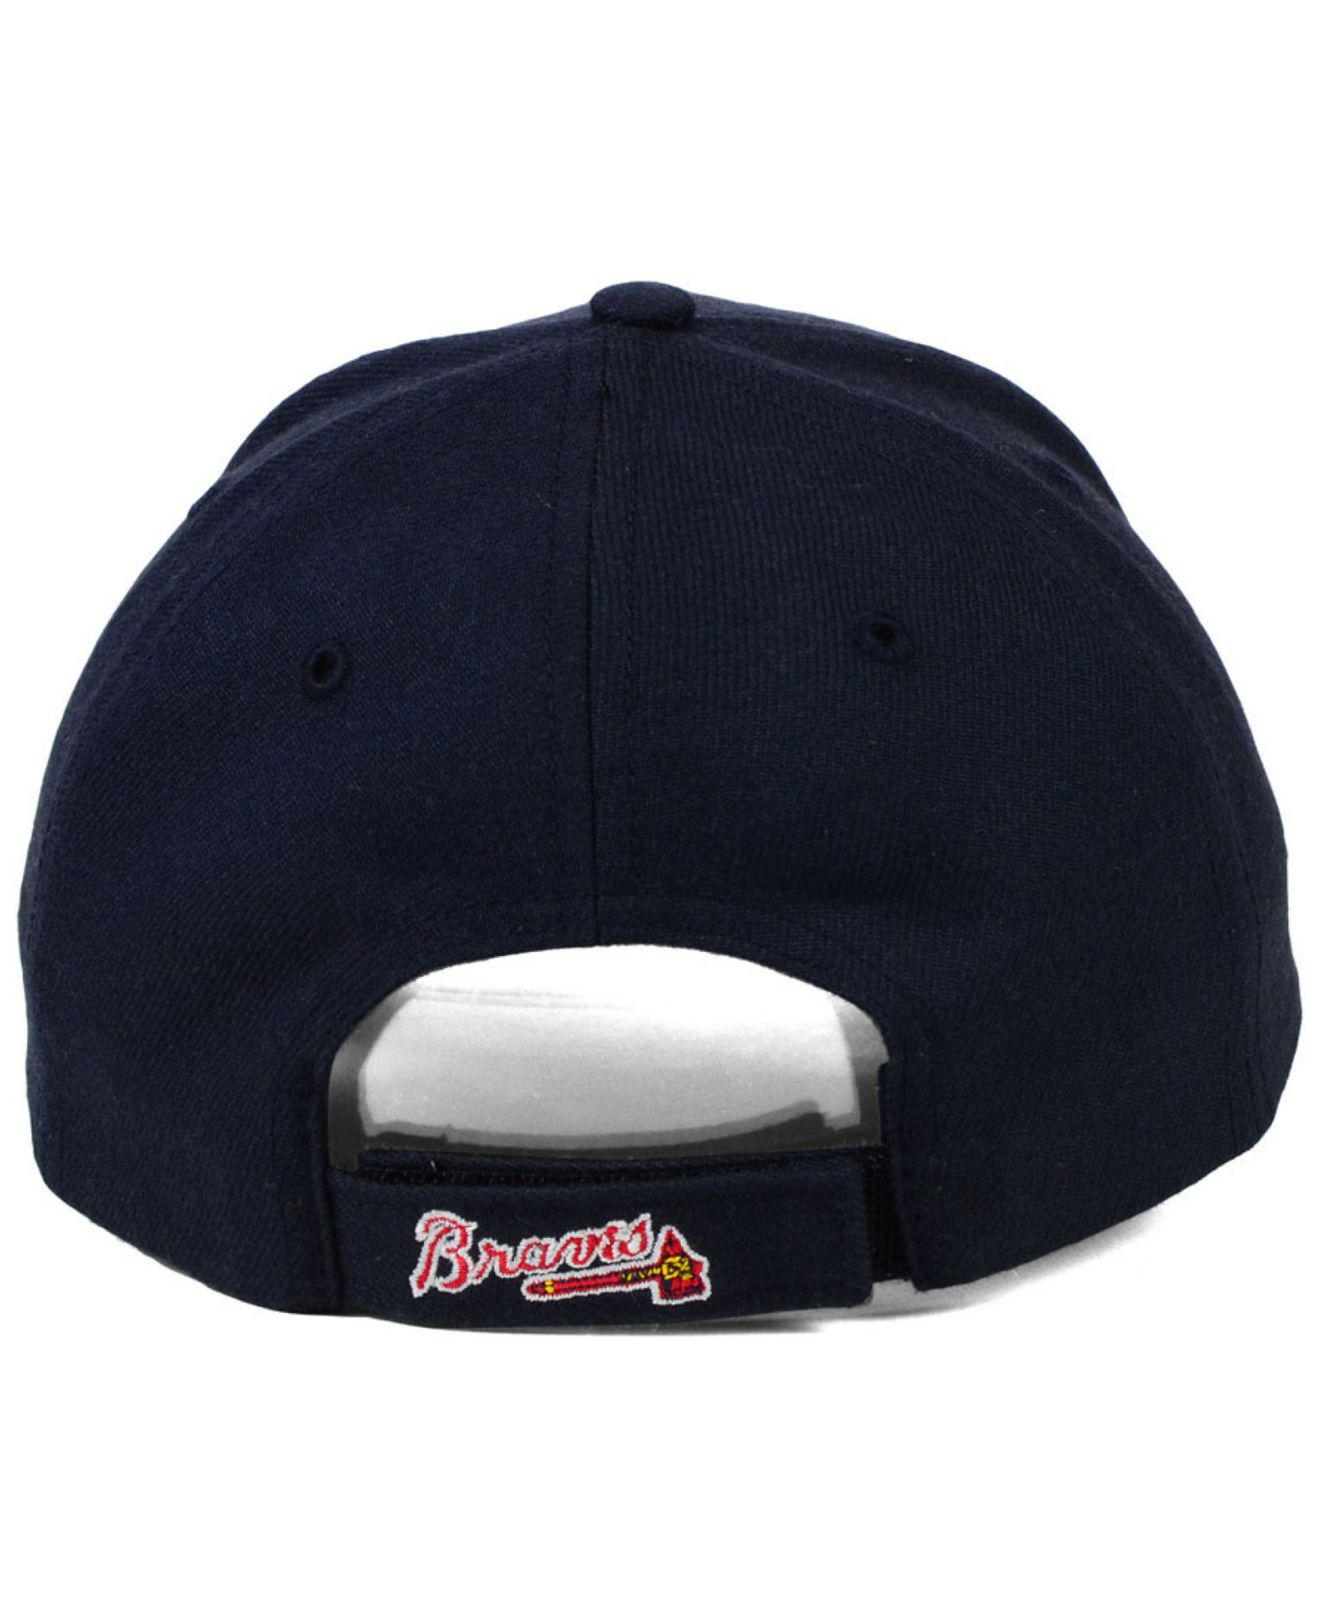 online store 9db6b 0f5bb ... americas pastime mvp replica adjustable hat navy 6fa9f 943d5  store  lyst 47 brand atlanta braves mlb on field replica mvp cap in blue 53c5e  e5a56